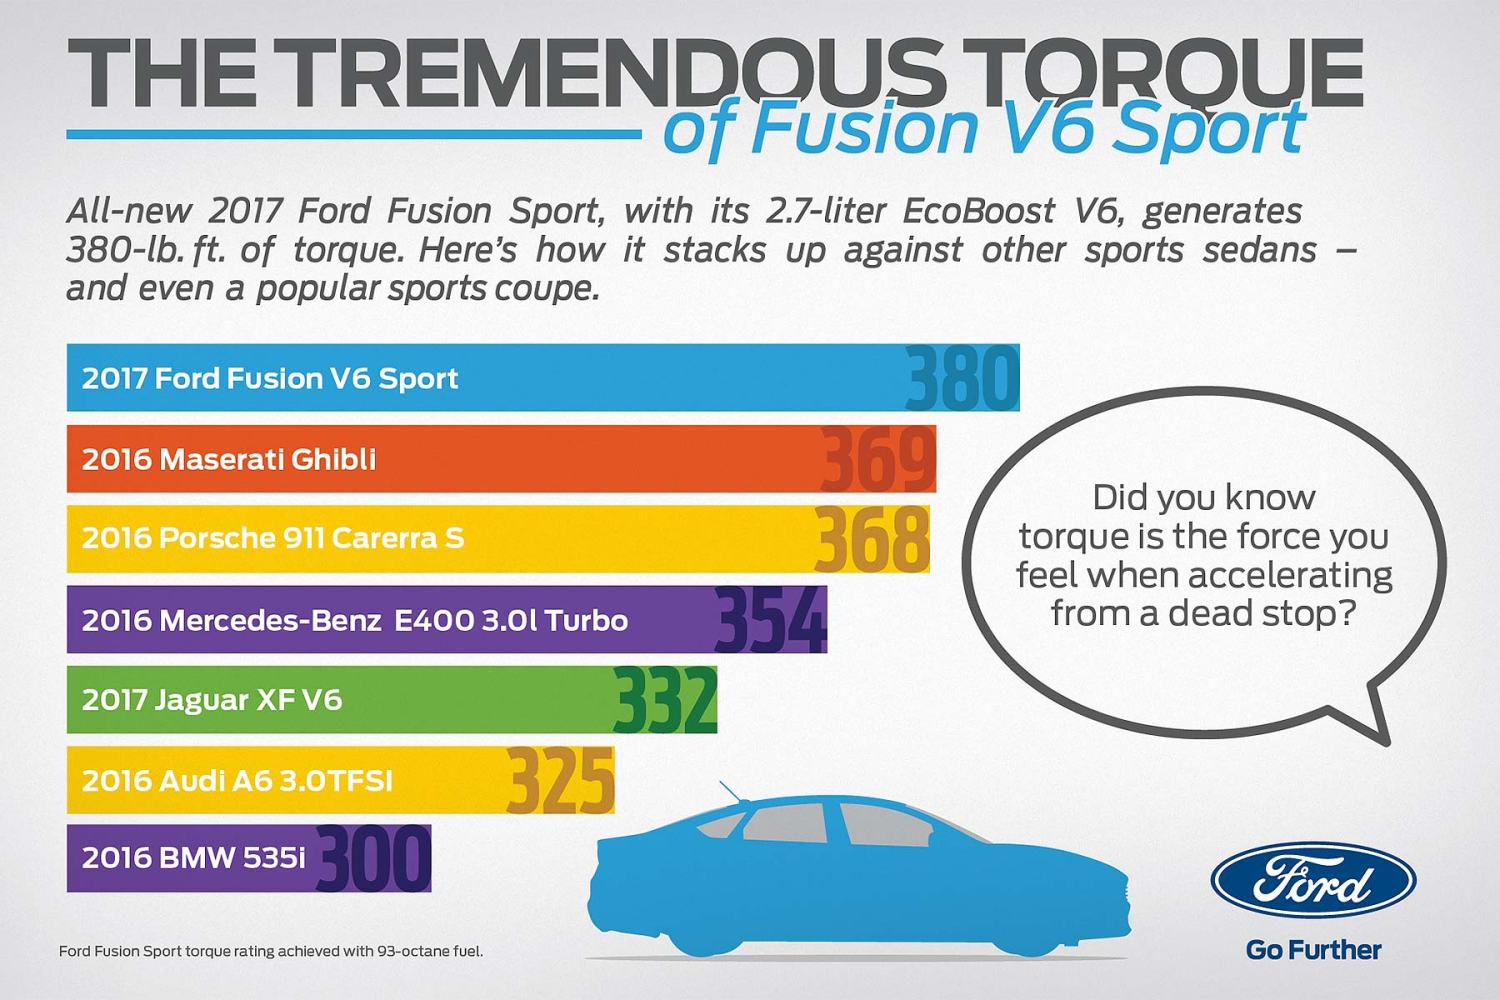 Ford Fusion 2017 torque